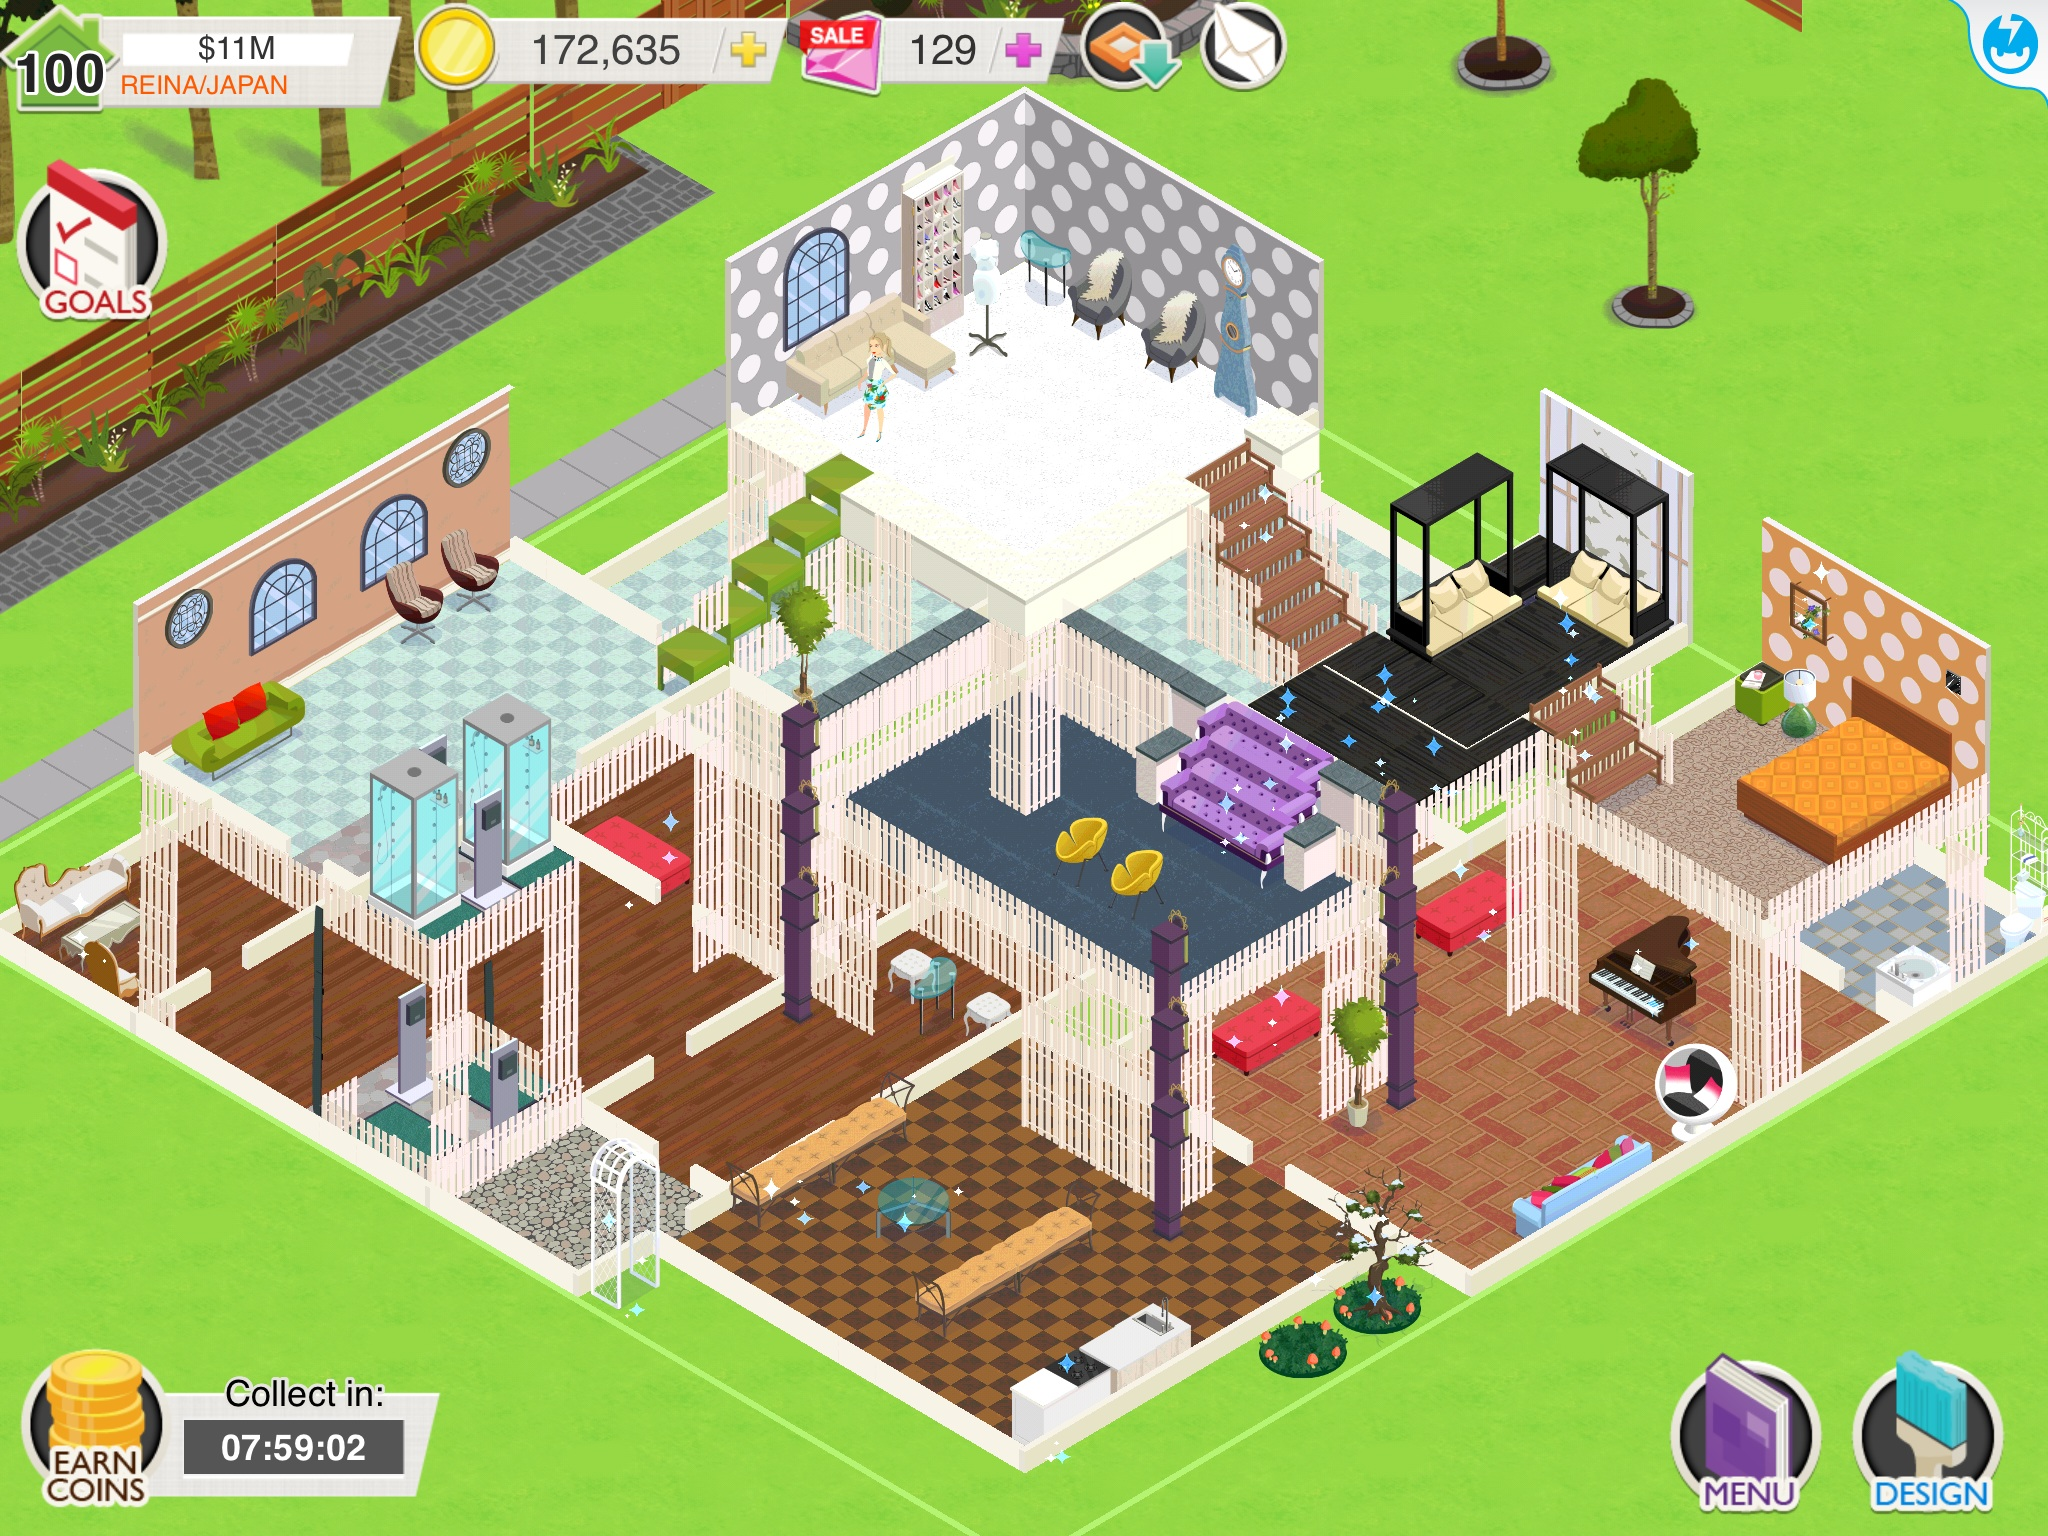 Home Design Story Reinajapan: create your house game